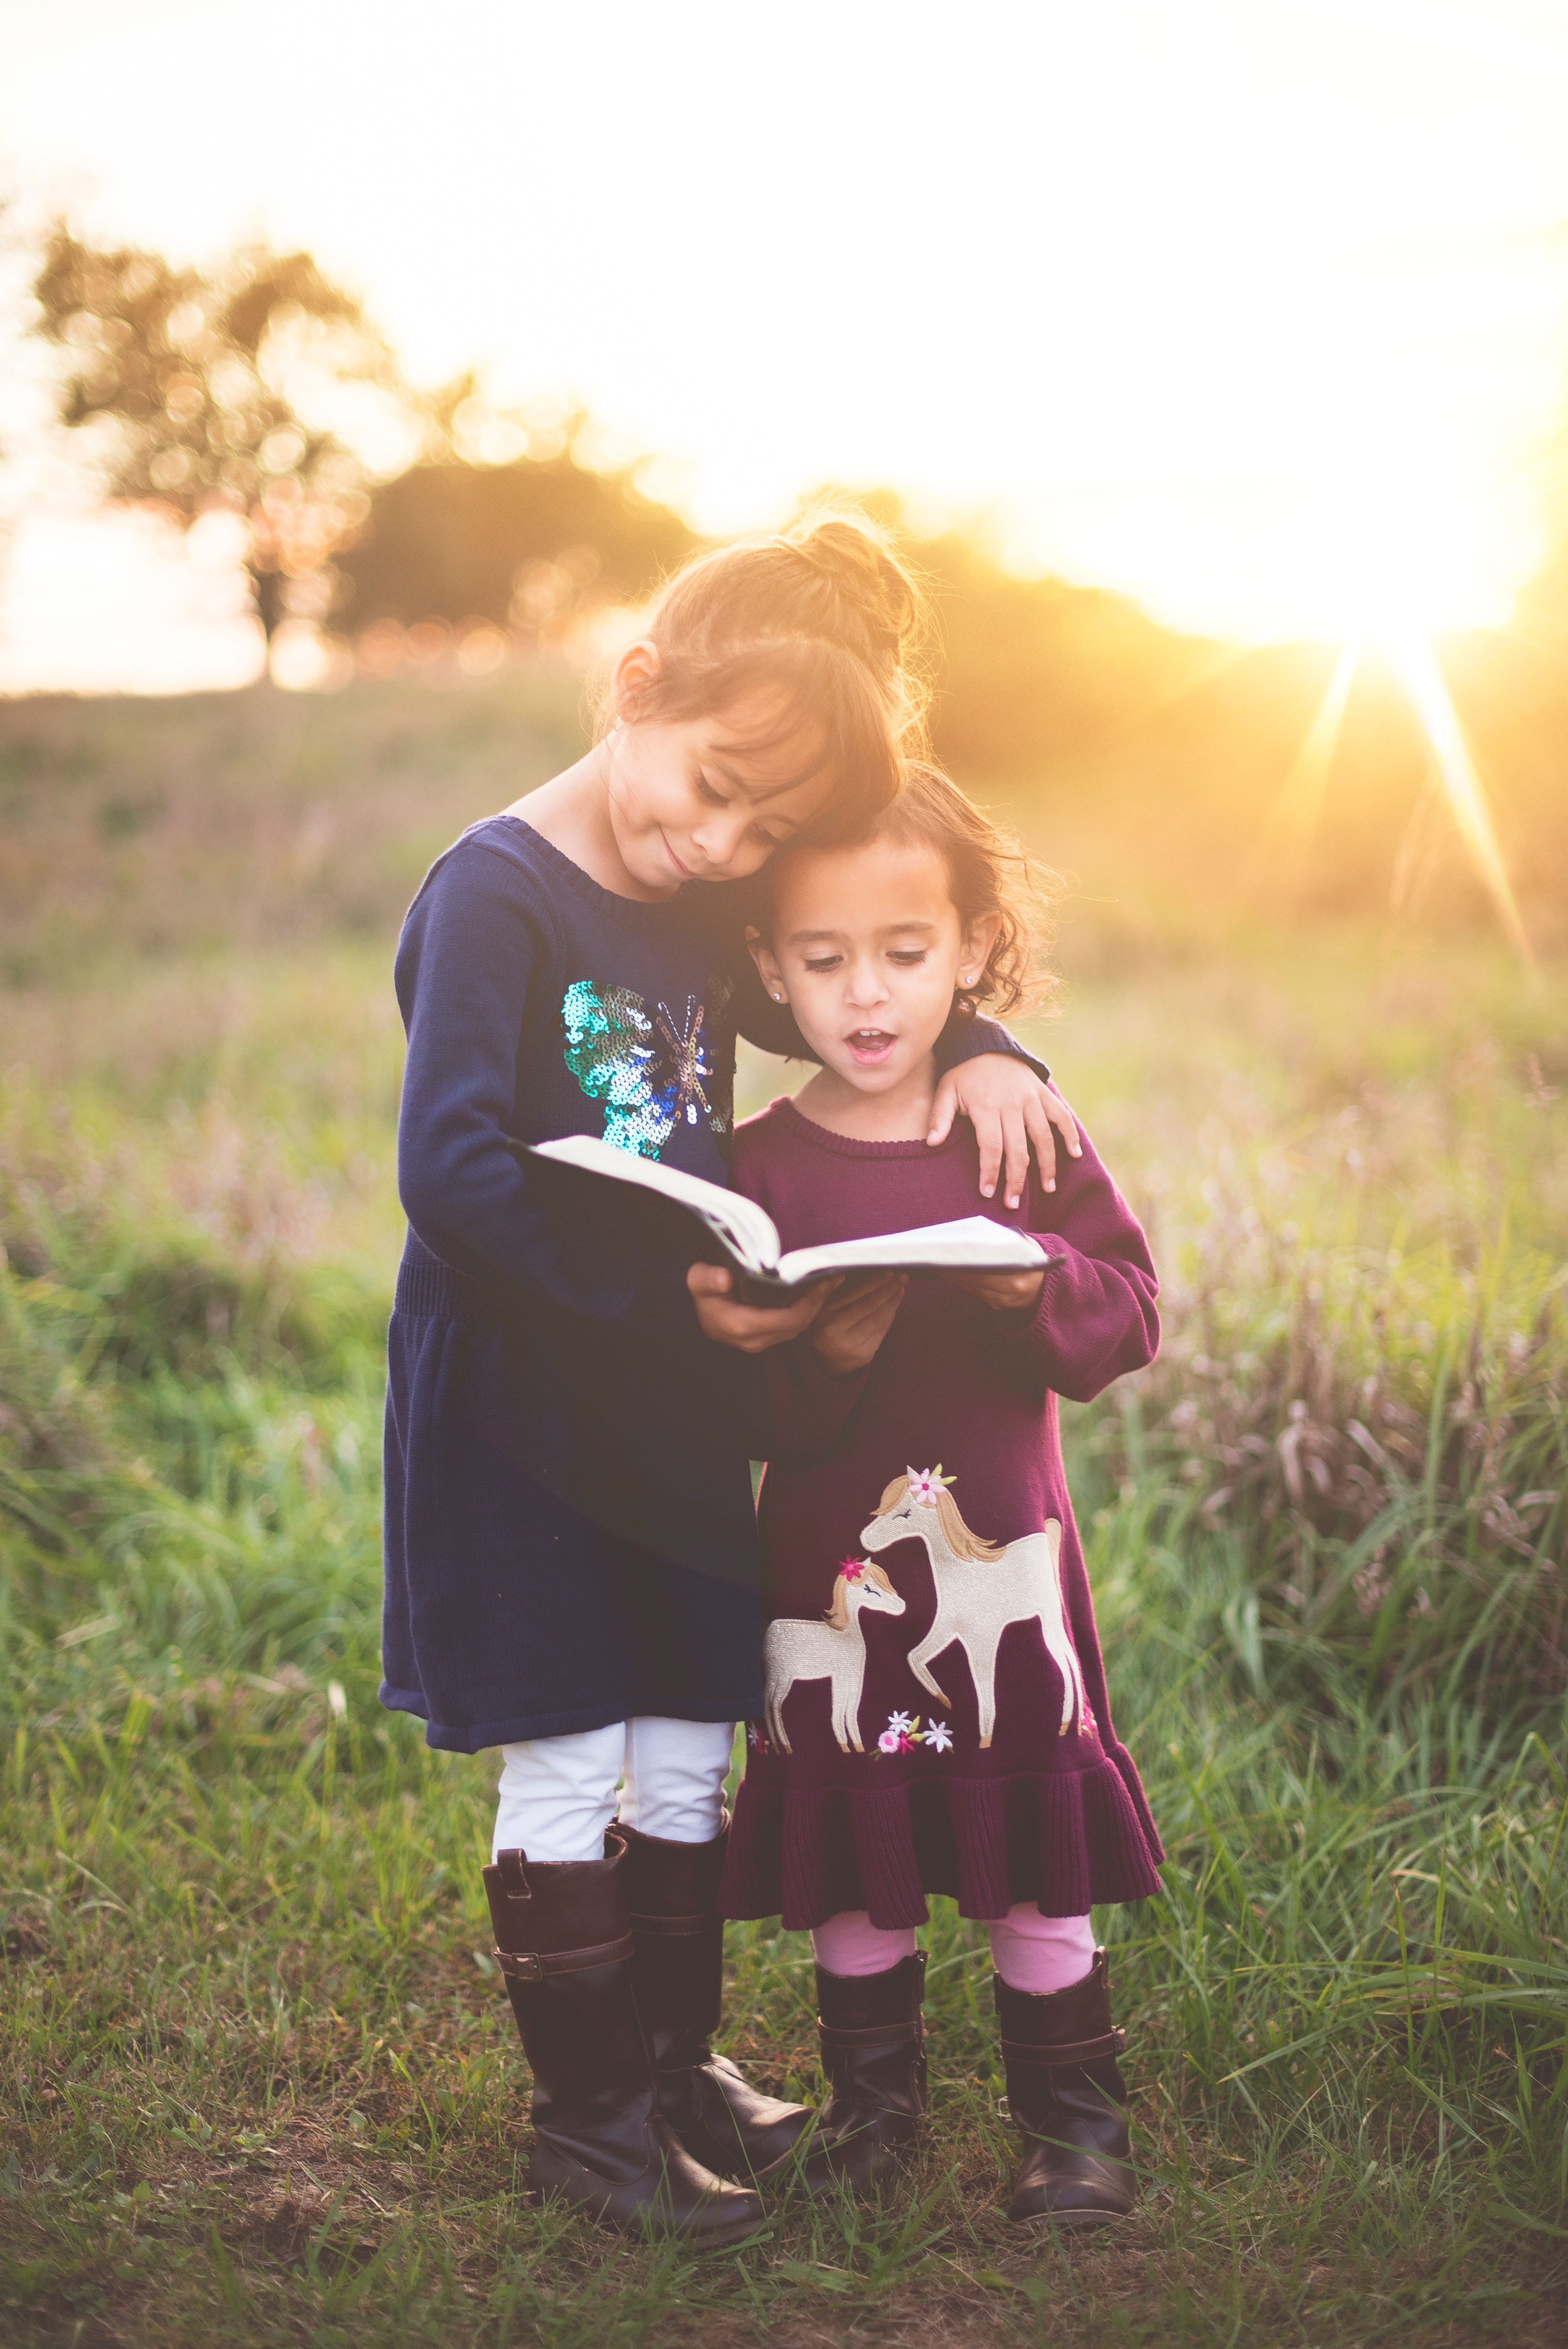 5 Things to do when your Au Pair arrives